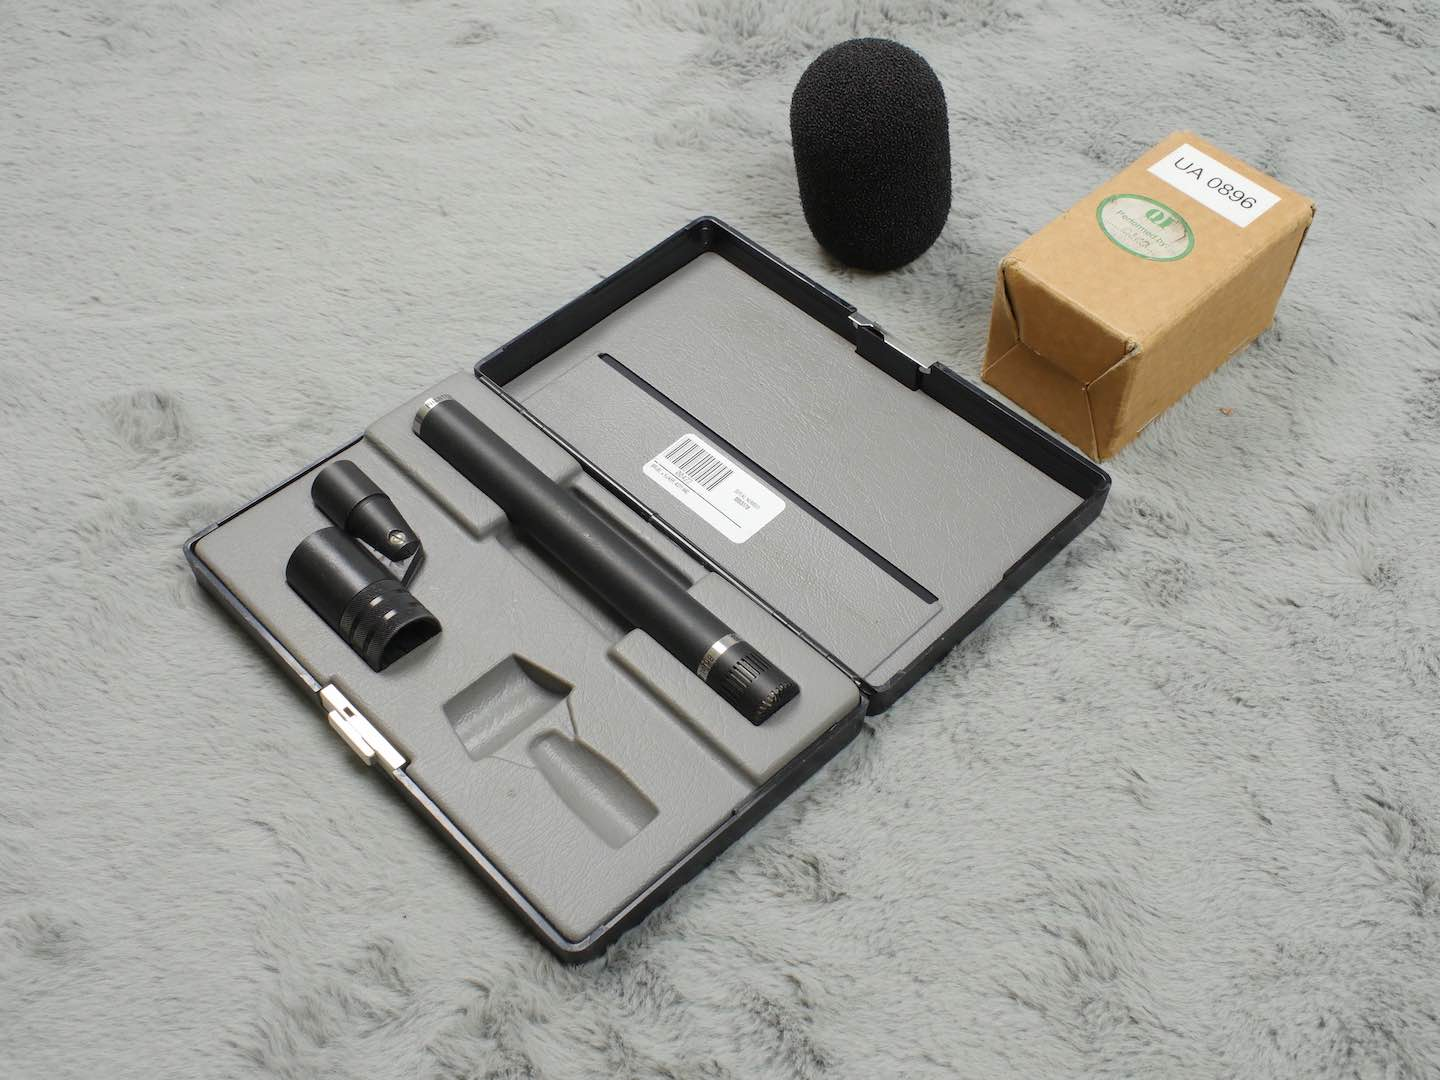 Bruel & Kjaer B&K DPA 4011 cardioid mic + mount, windshield and case